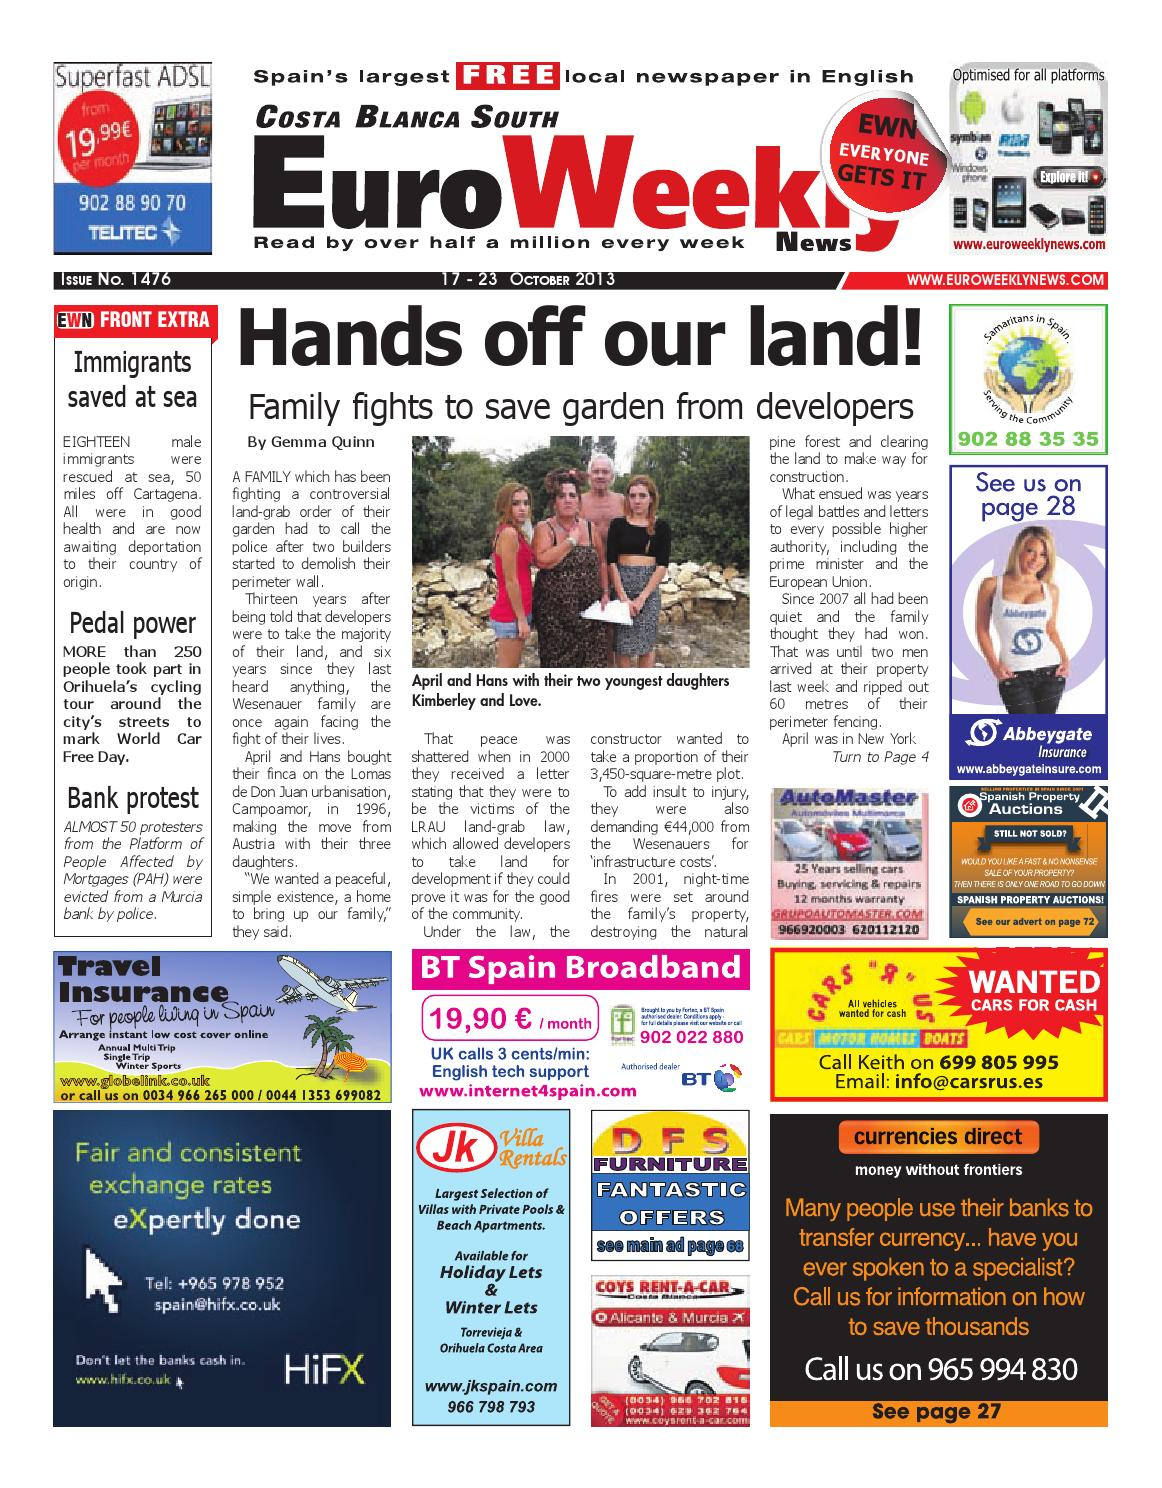 14a26f00112 Euro Weekly News - Costa Blanca South 17 - 23 October 2013 Issue 1476